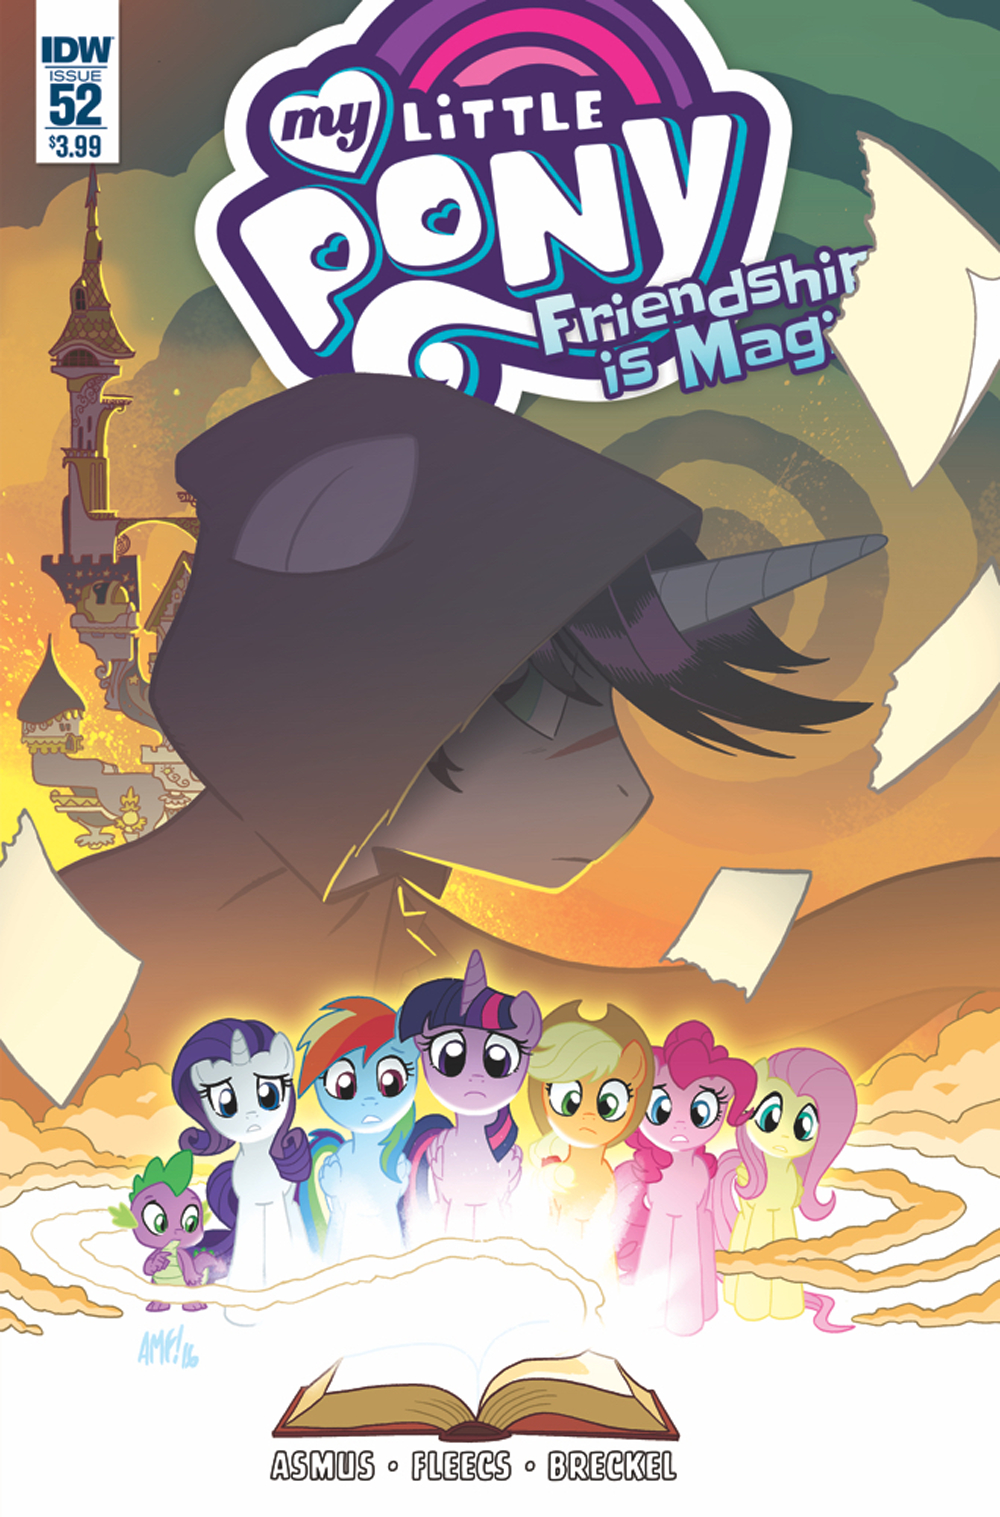 MY LITTLE PONY FRIENDSHIP IS MAGIC #52